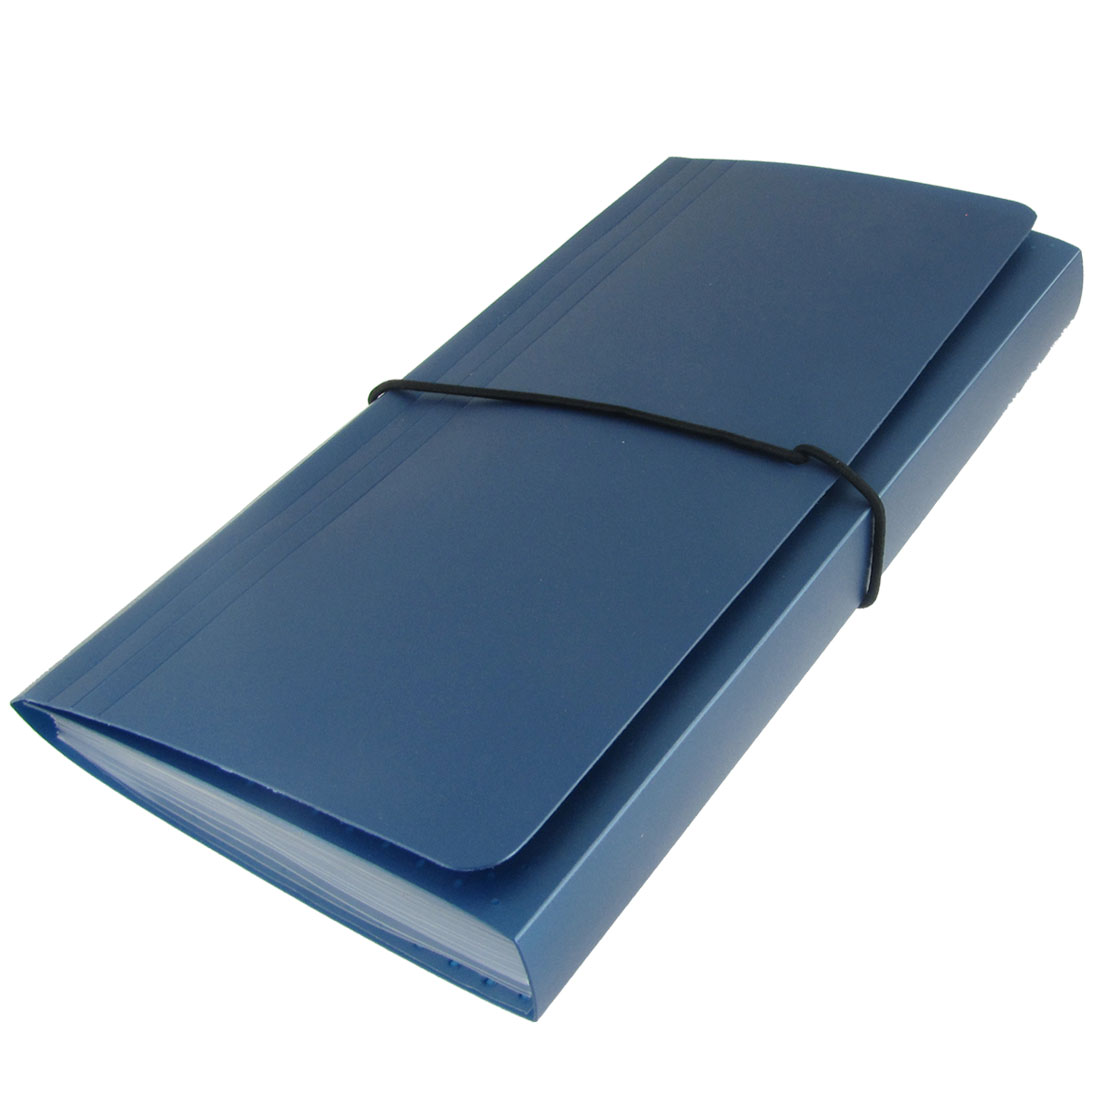 Elastic Strap Closure Rectangle Plastic Blue Cover File Folder